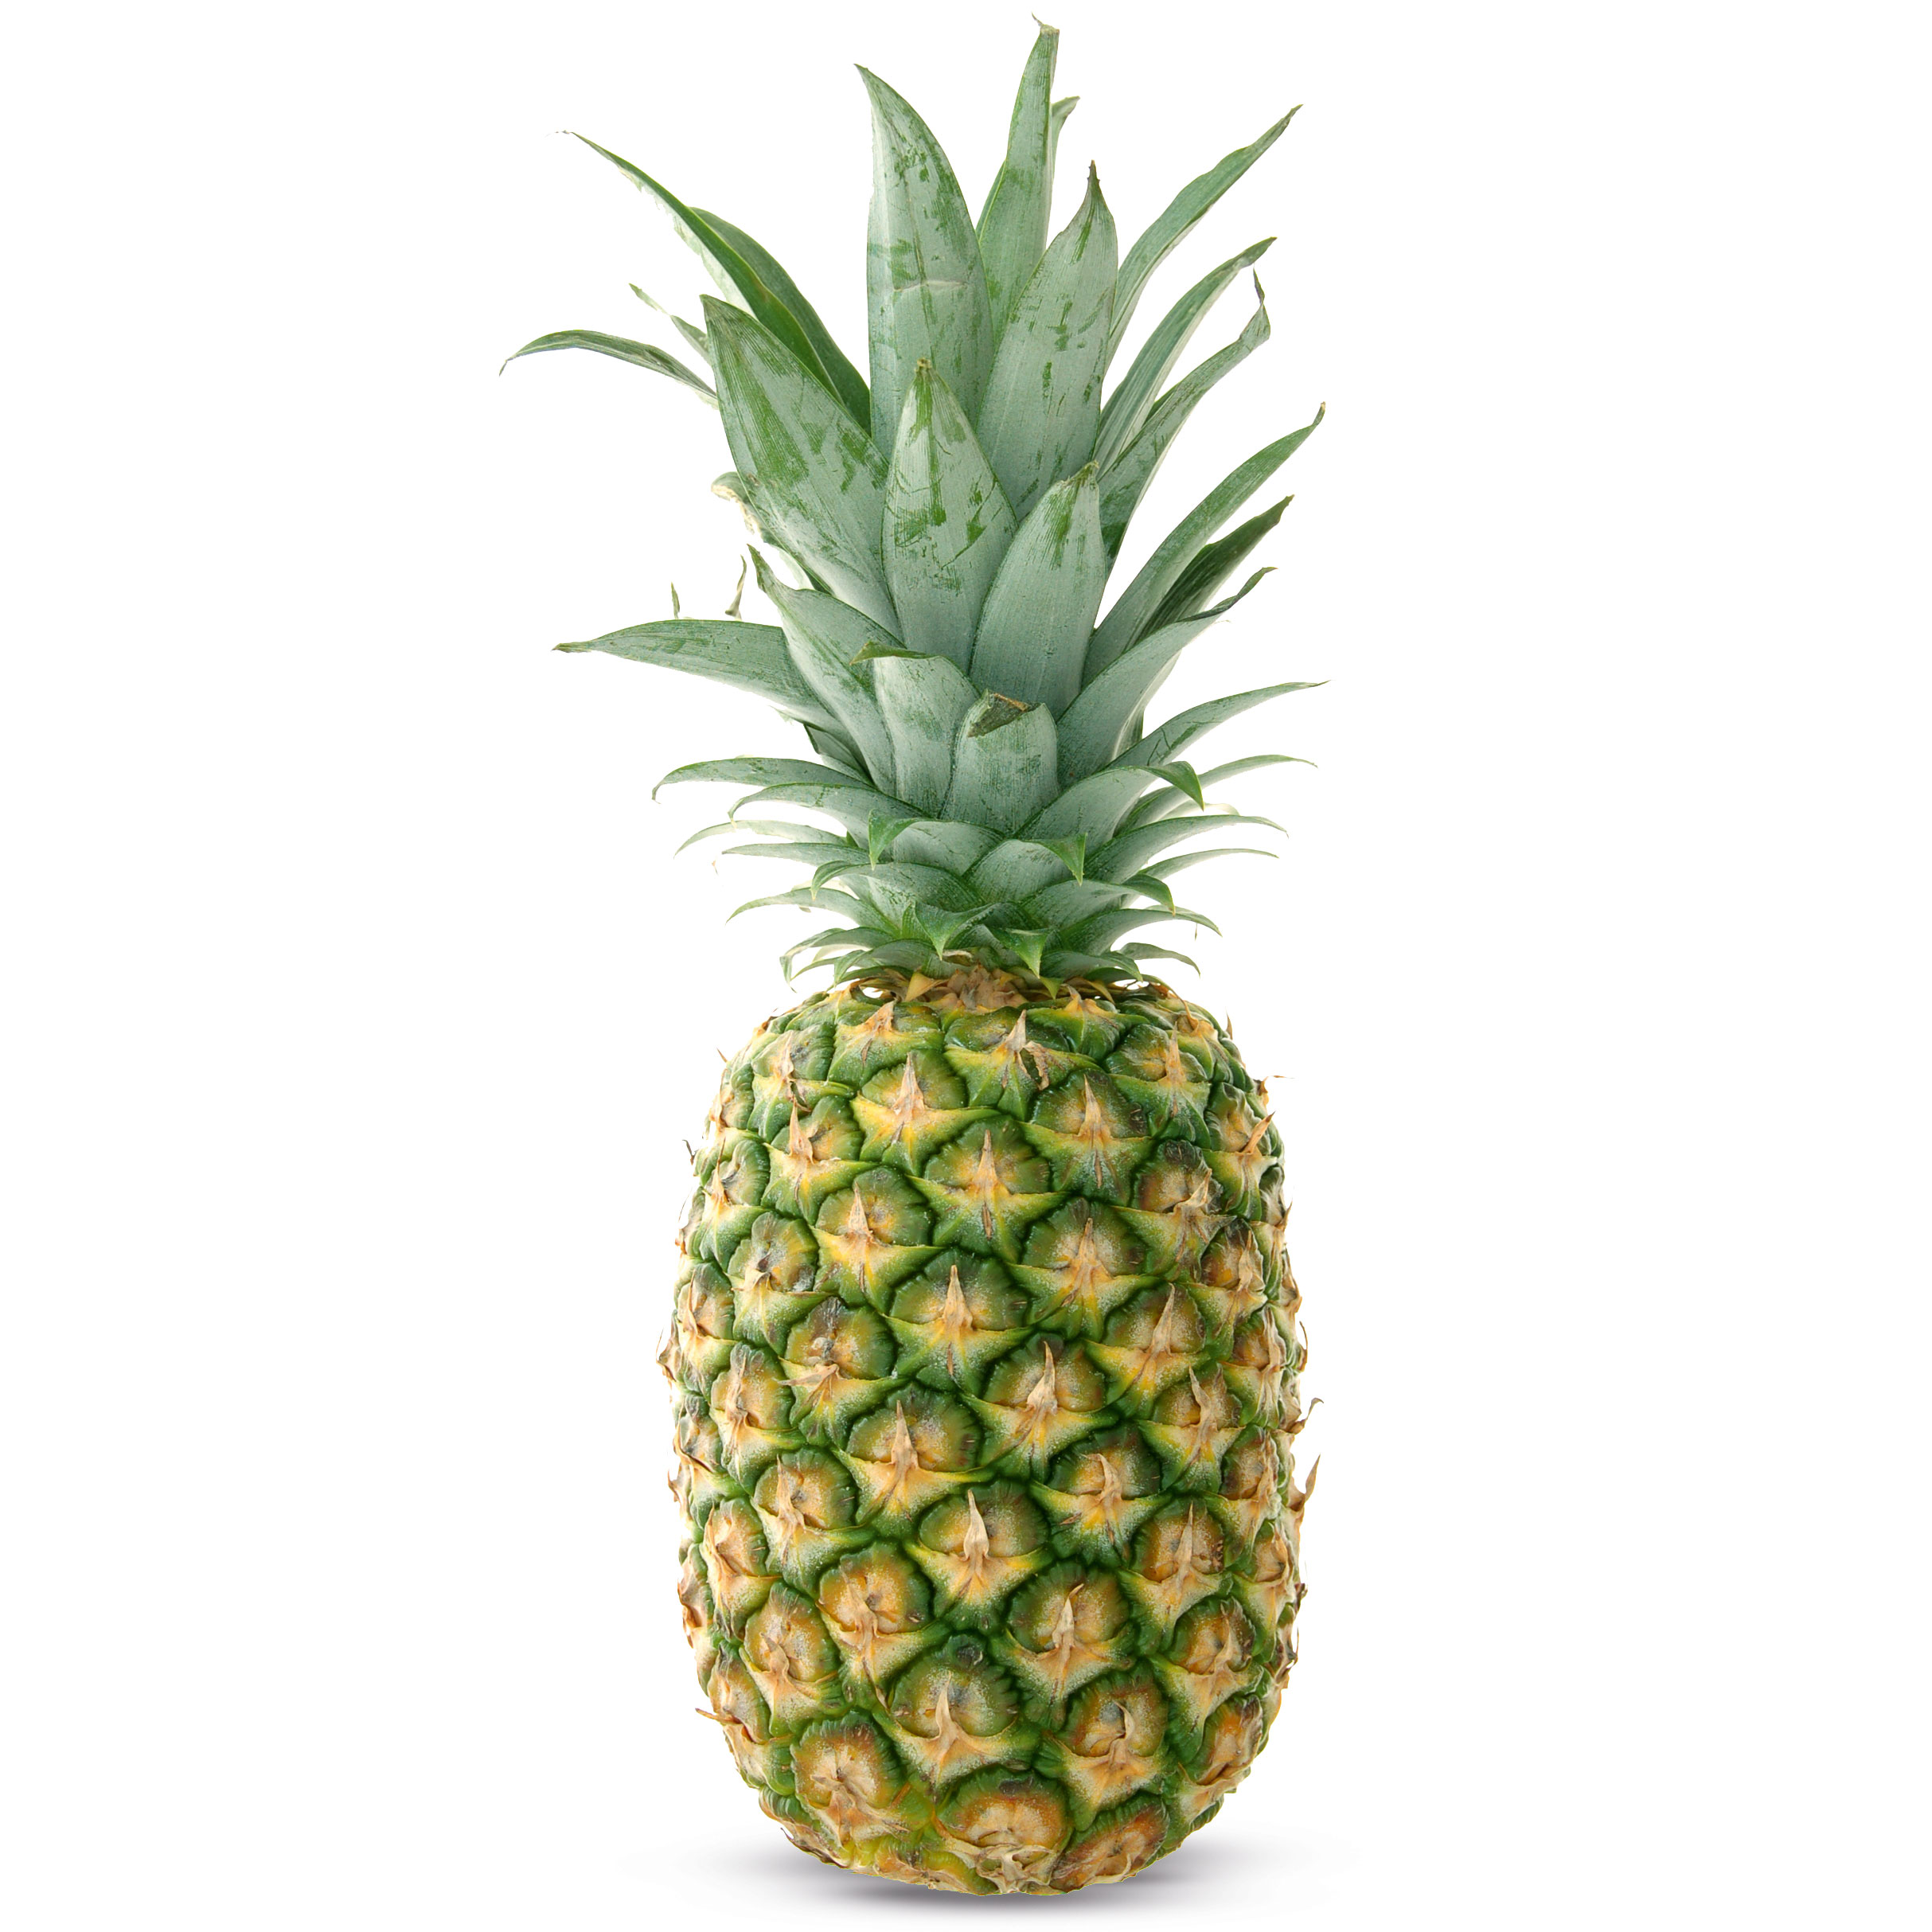 Pineapple Edible Multiple Fruit 454.27 Kb